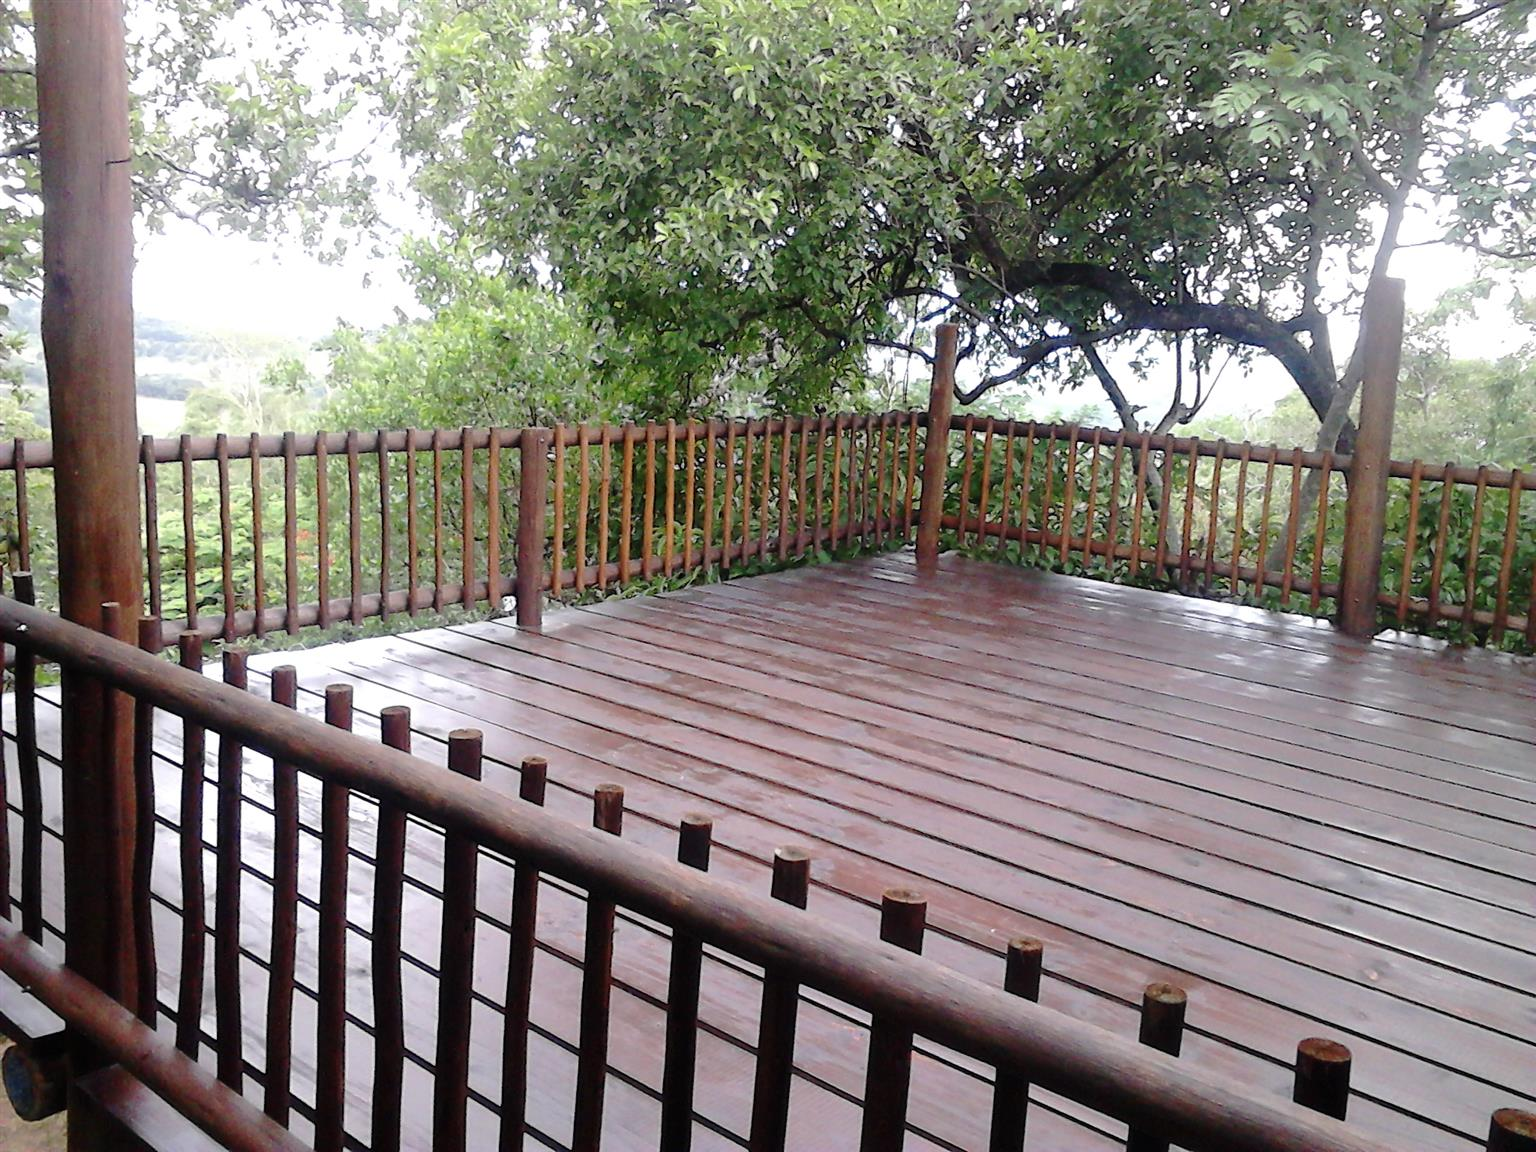 HOUSE FOR SALE :Holiday Home in Hazyview  - sleeps 6 max, 3 beds, 2 baths, living room, deck with lowveld view HENNIE 083 937 9263